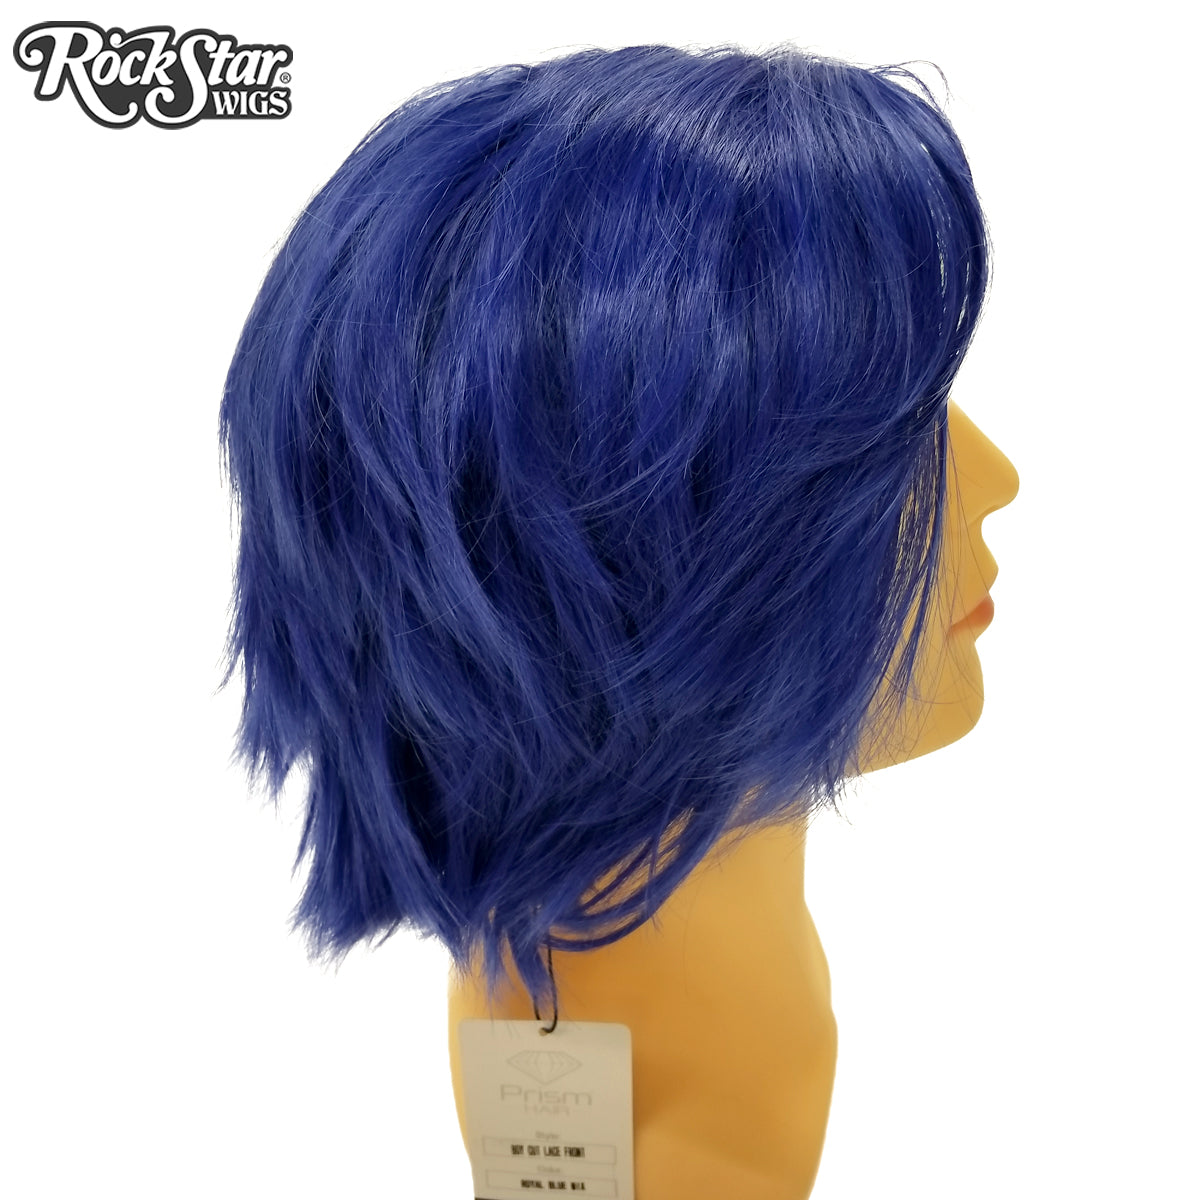 **RETIRED** Lace Front Boy Cut - Royal Blue 00804